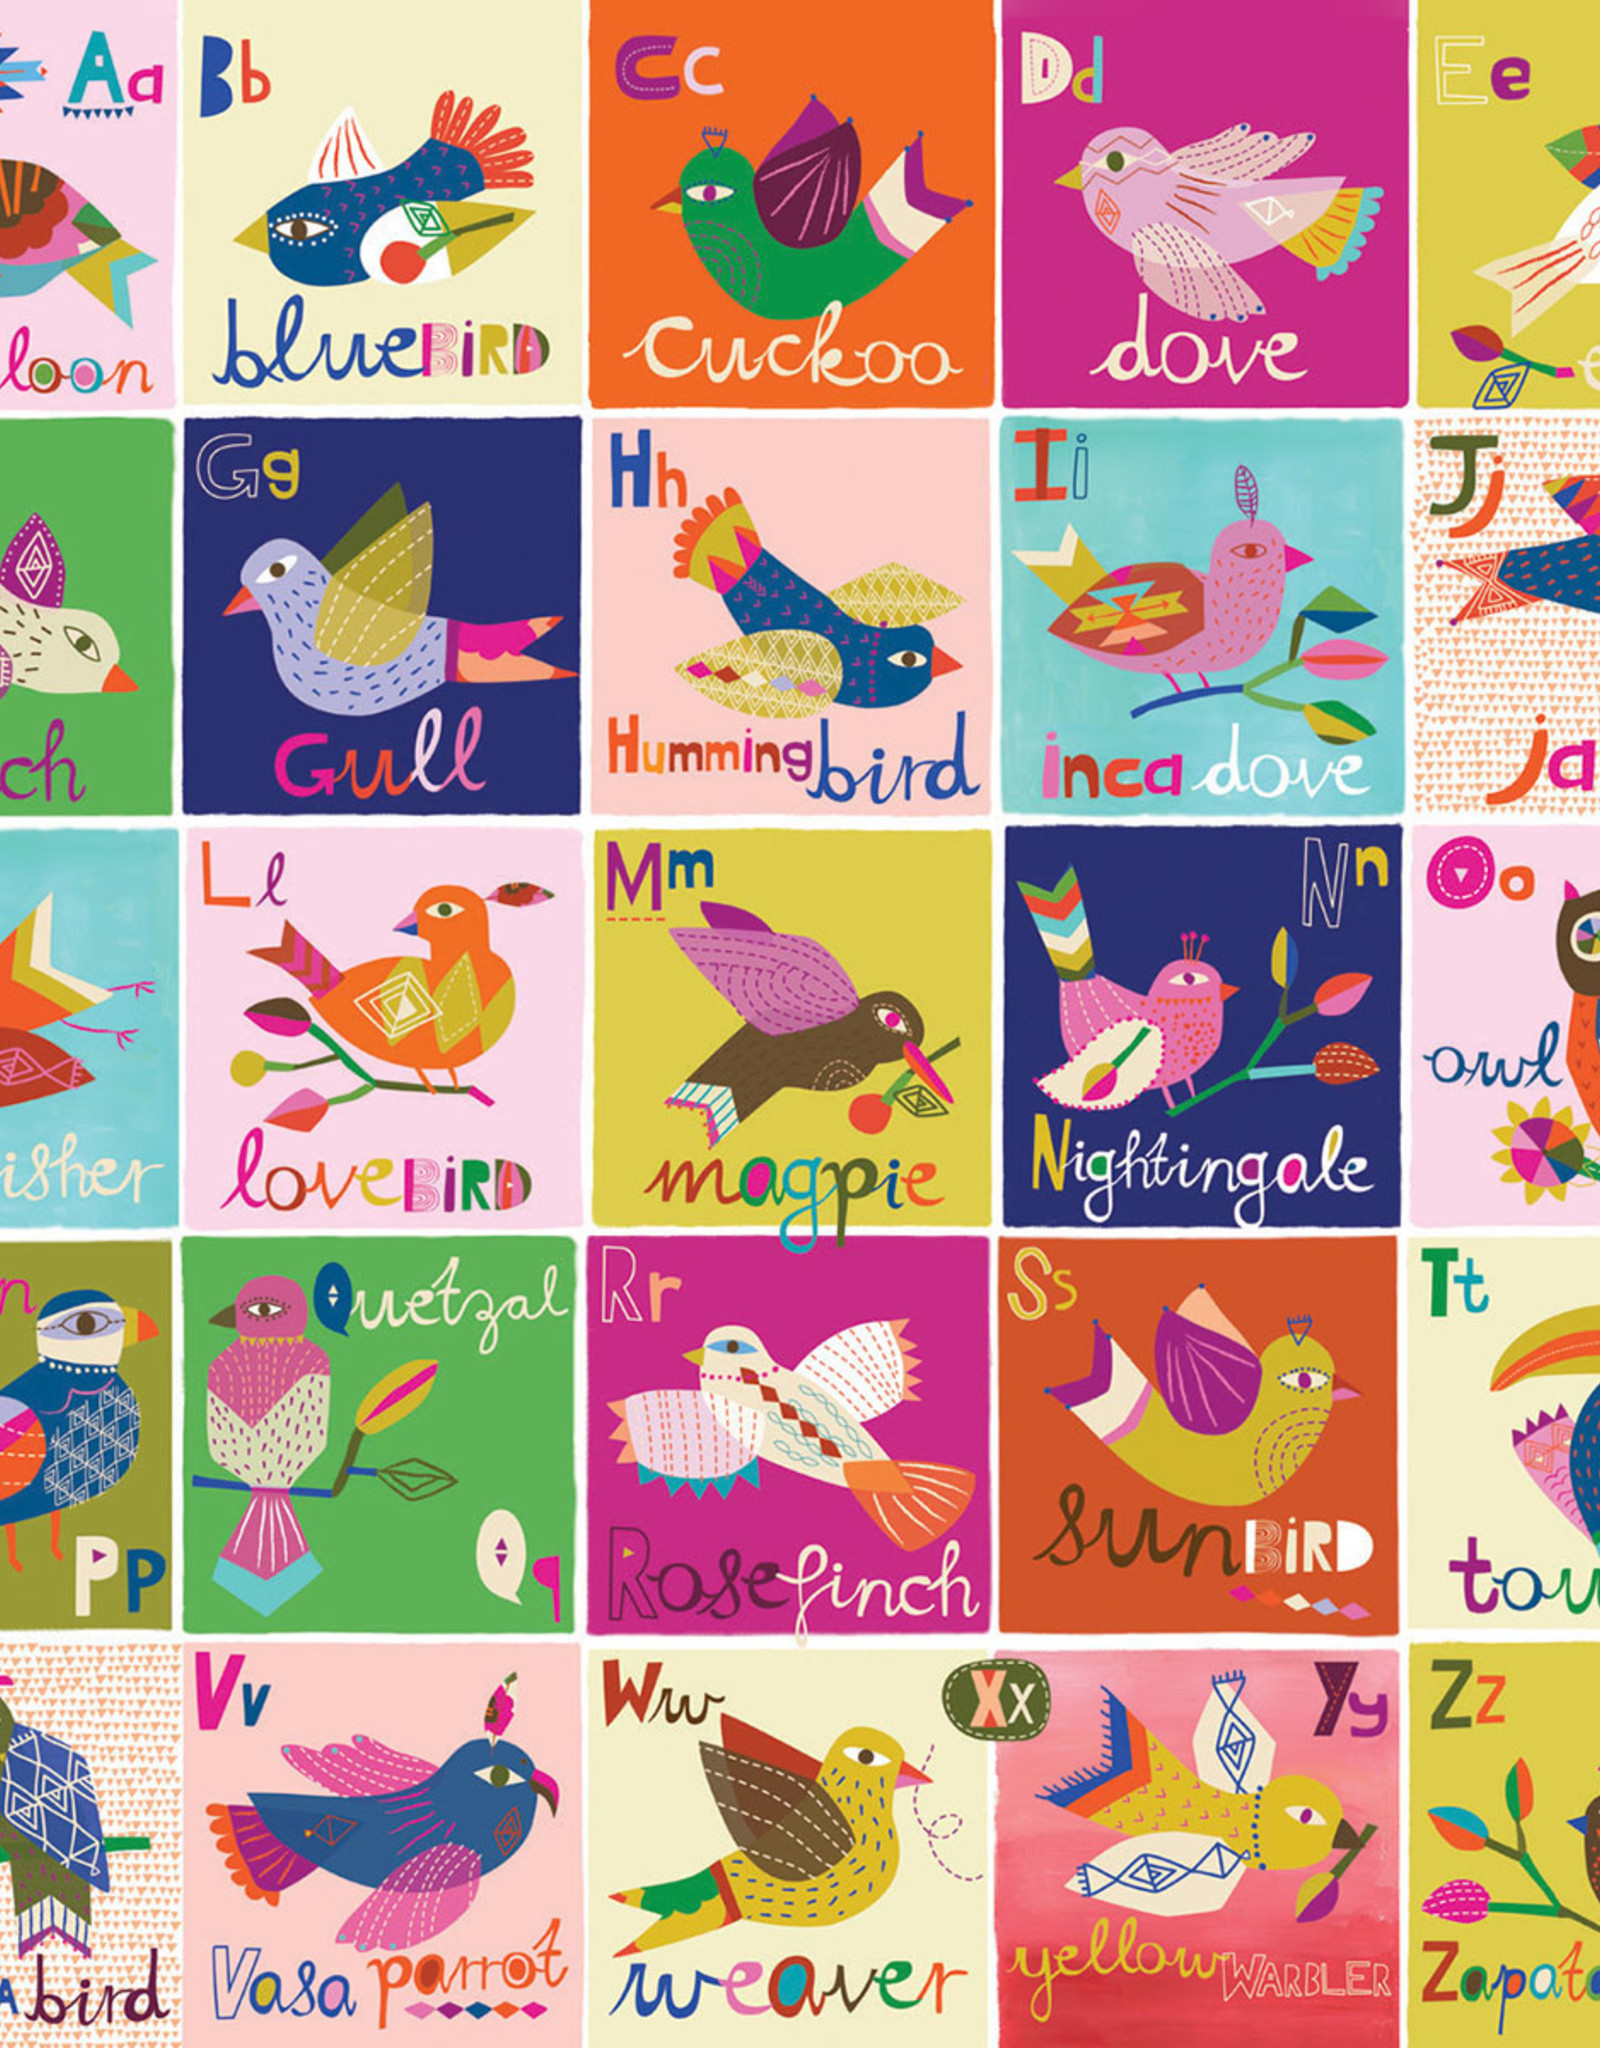 A to Z Birds Puzzle